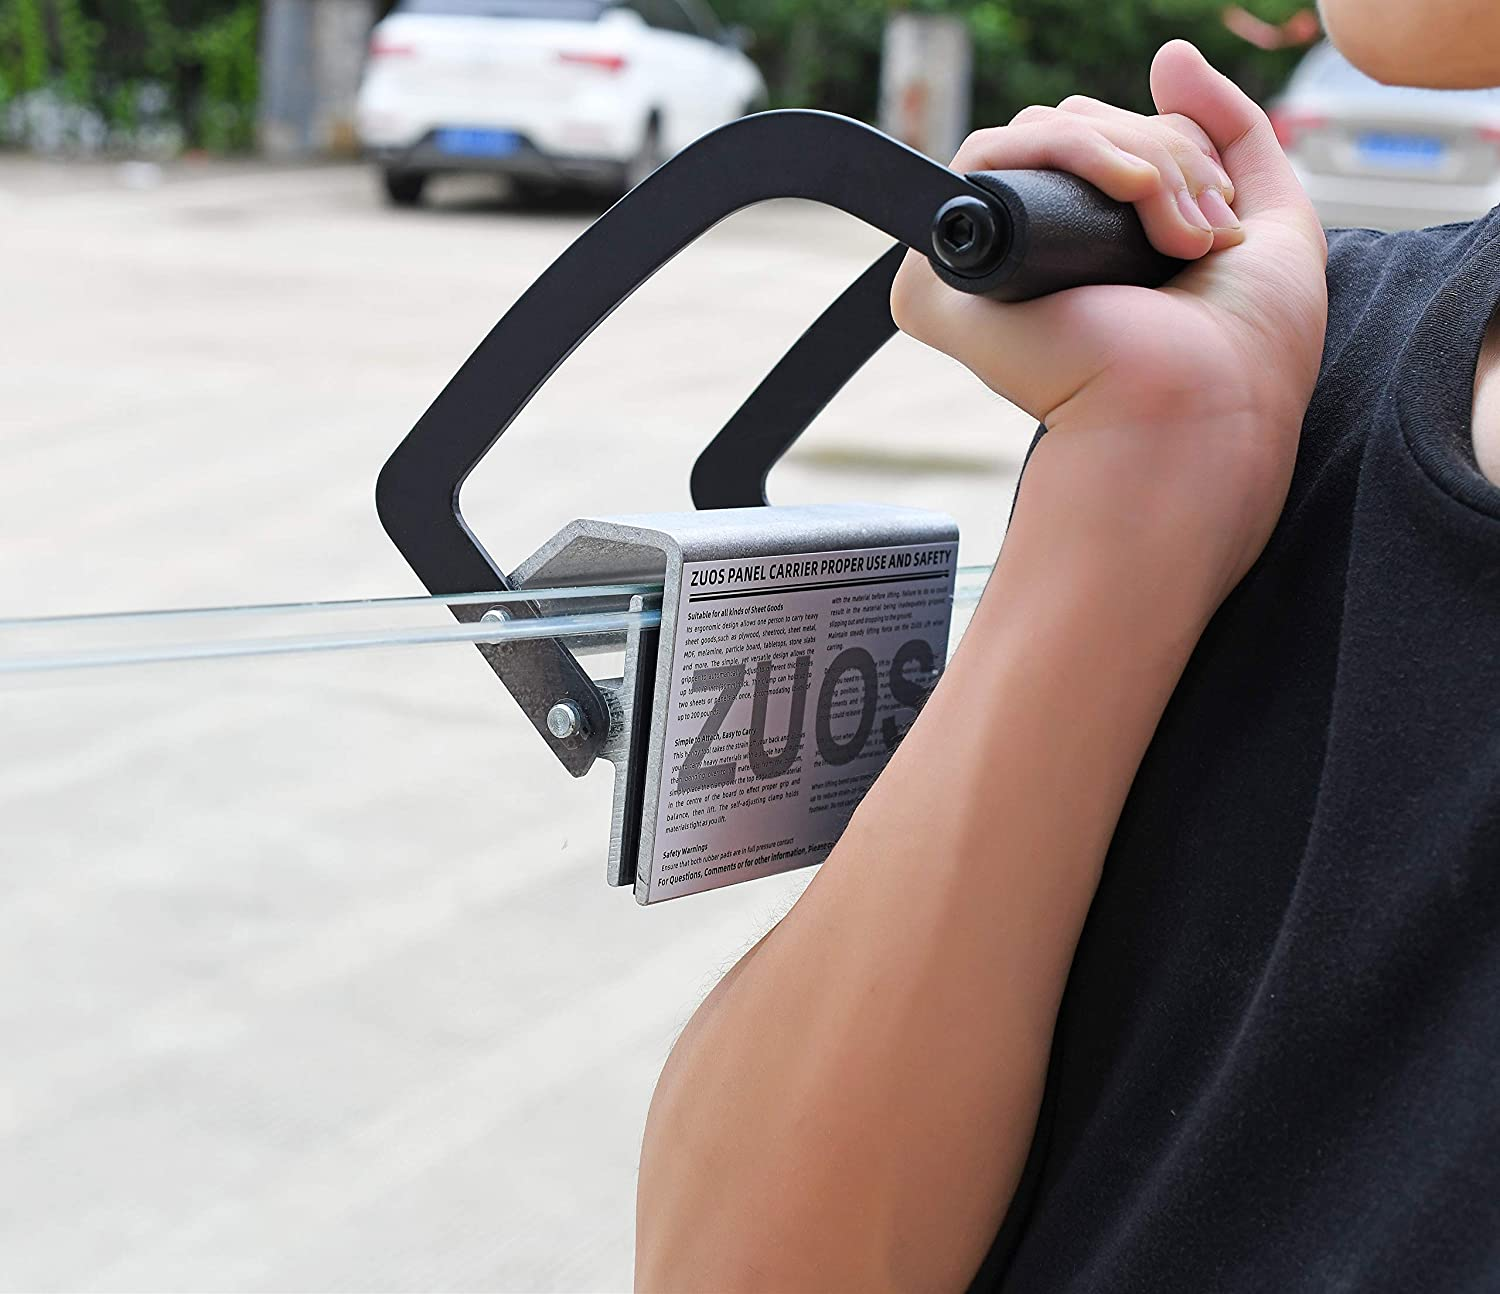 Double handle clamp ZUOS Lift Plywood and Sheetrock Panel Carrier Sheet Goods Carry Handle 0 to 1 1//8 1 PCS Heavy Duty Metal Gripper